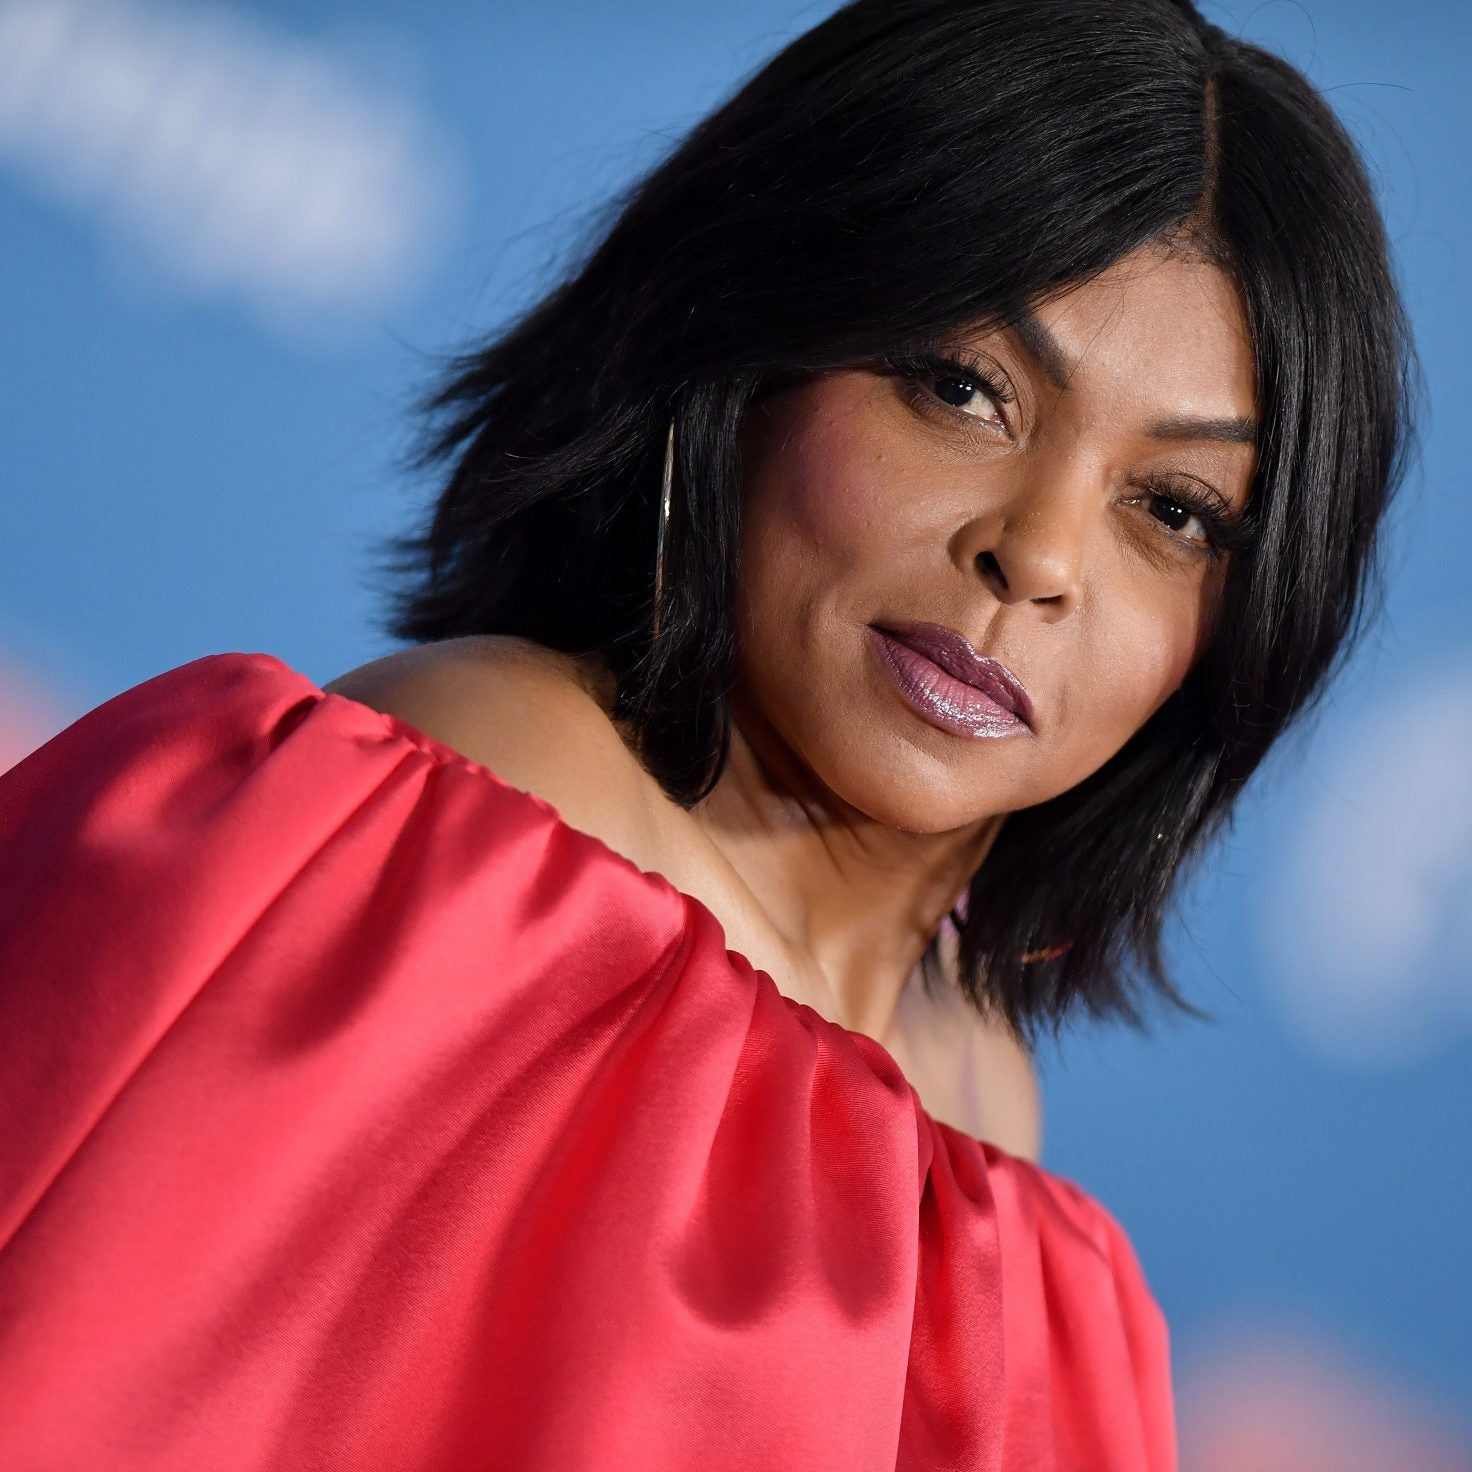 Taraji P. Henson Speaks To Black Female Mayors About Increasing Access To Mental Health Resources